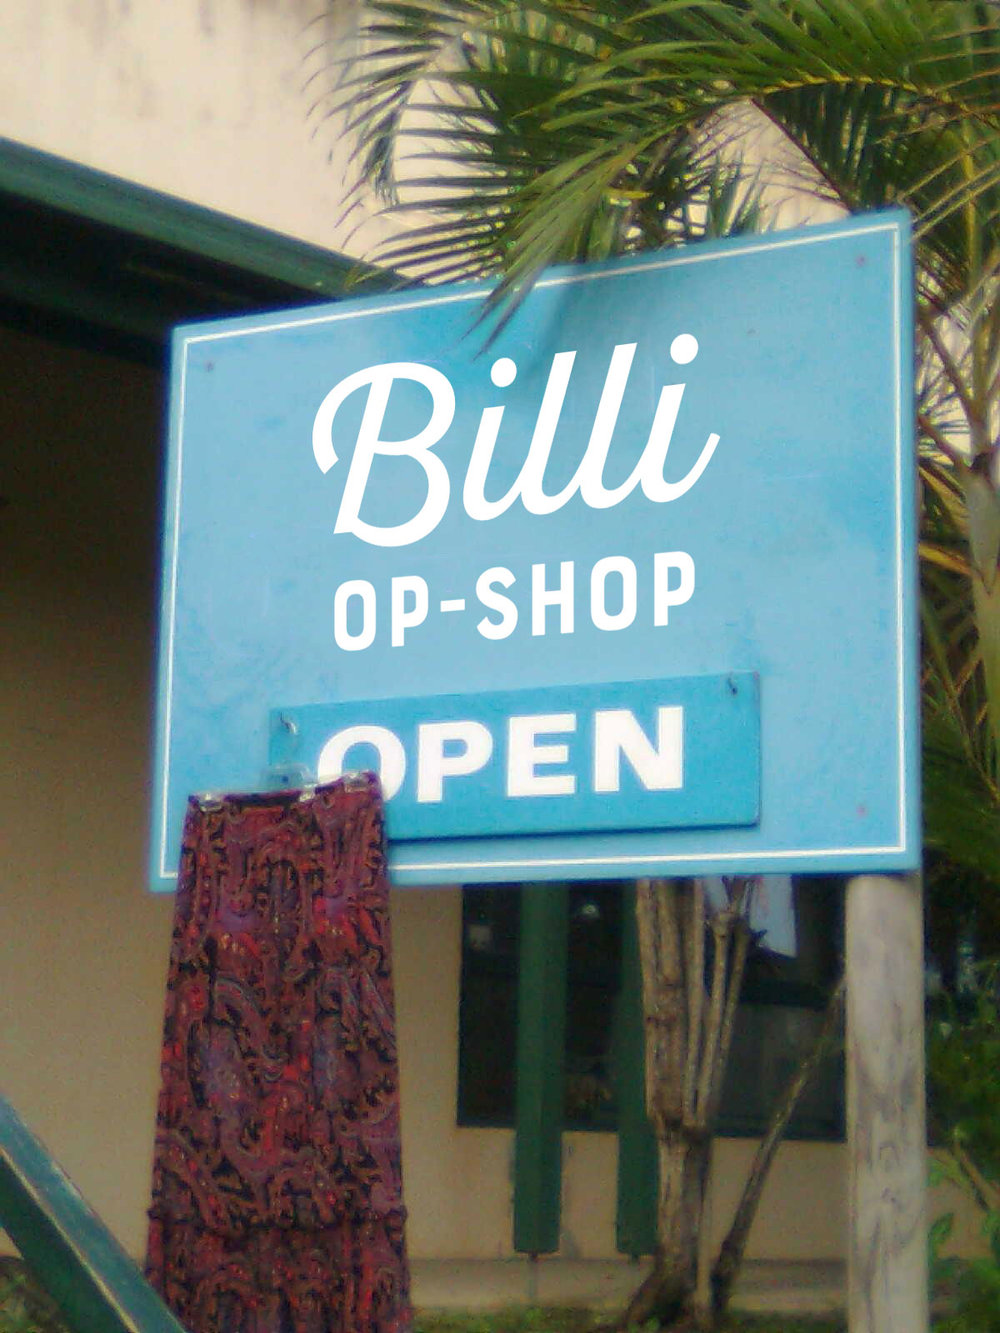 Eastgate Op Shop Billinudgel Byron Shire Community Support & Involvement